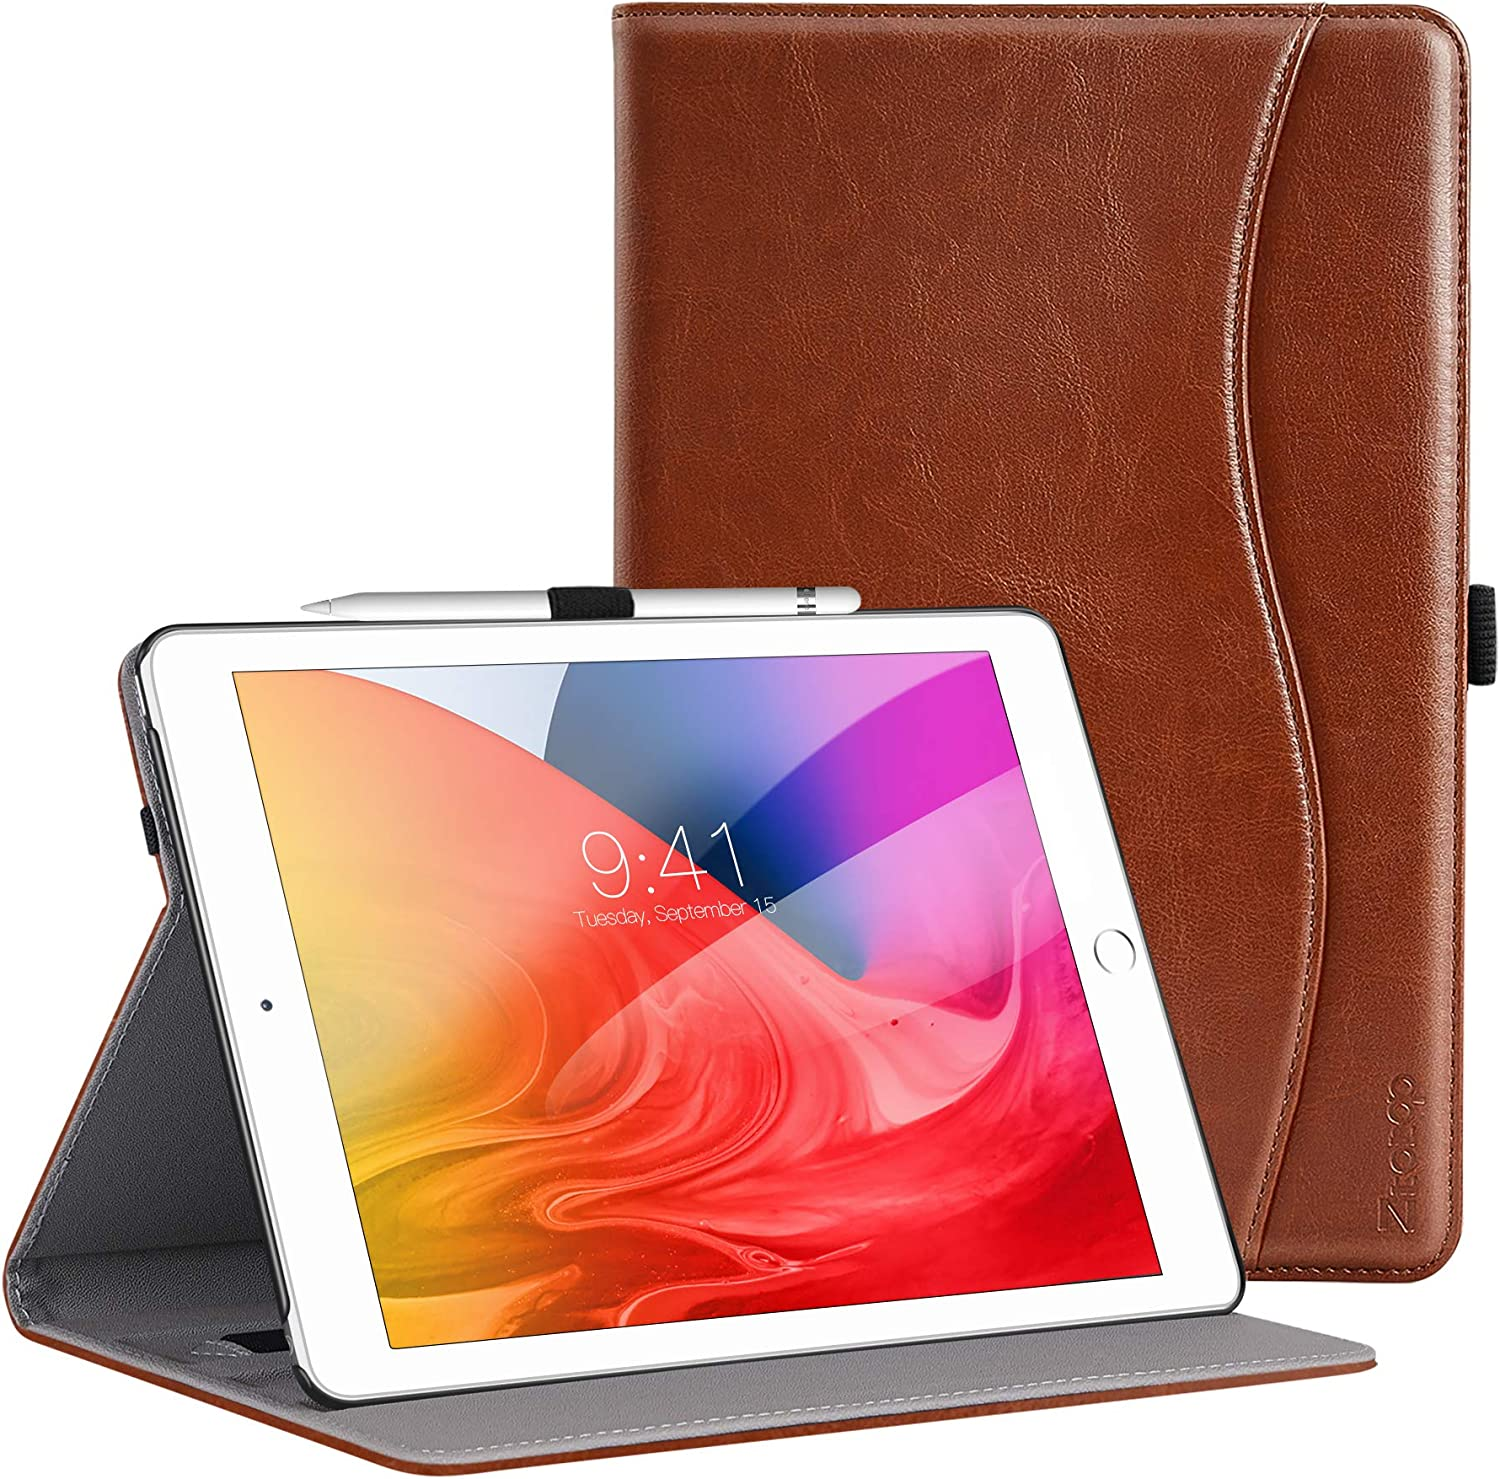 ZtotopCase for New iPad 8th Genaration/iPad 7th Generation 10.2 Inch 2020/2019, Premium PU Leather Folding Stand Cover for iPad 10.2 '' 2020 8th Gen/iPad 10.2'' 2019 7th Gen, Brown